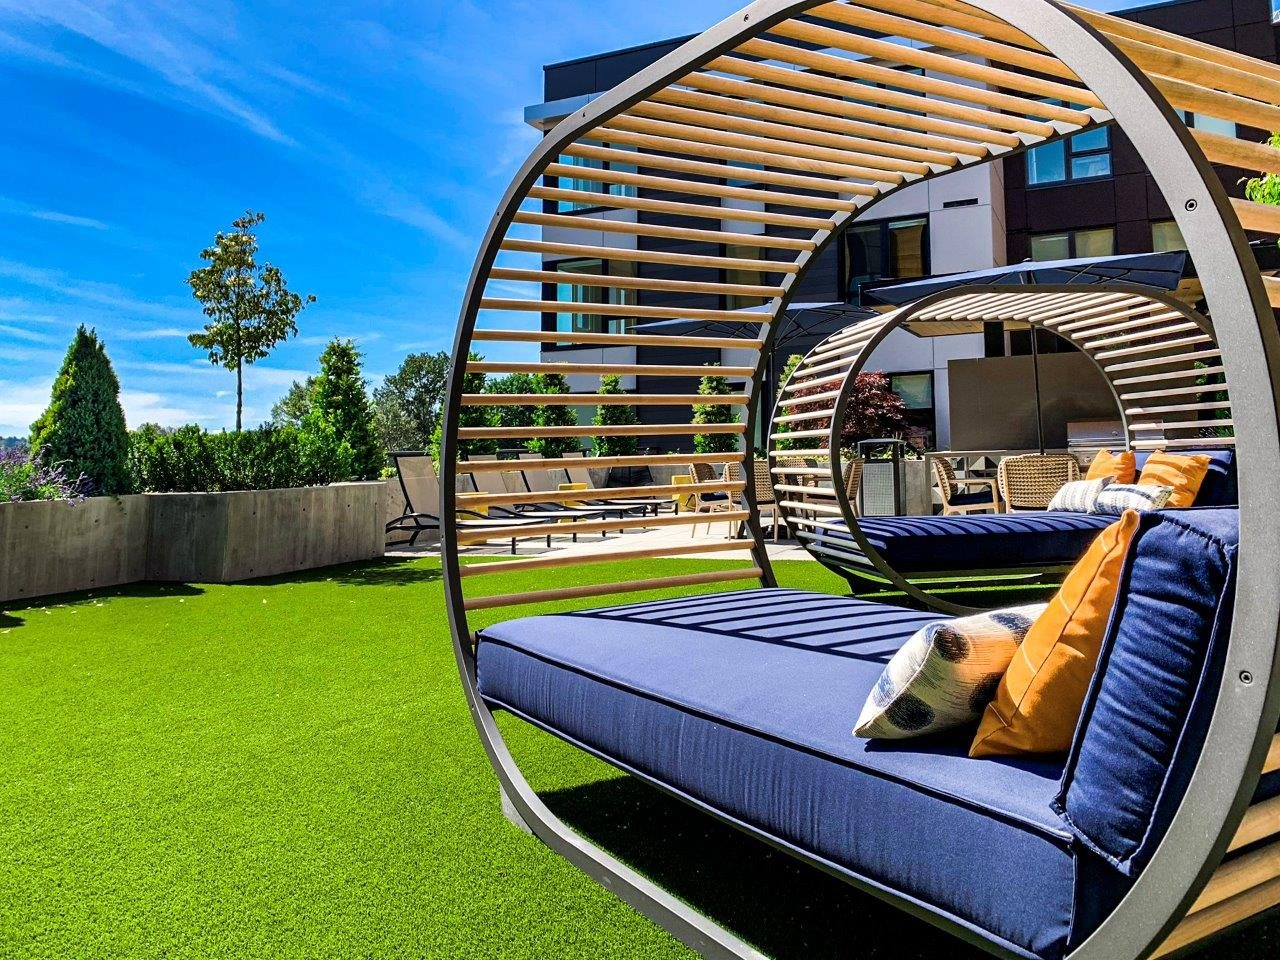 Aura Totem Lake Apartments Rooftop Courtyard and Covered Lounge Chairs